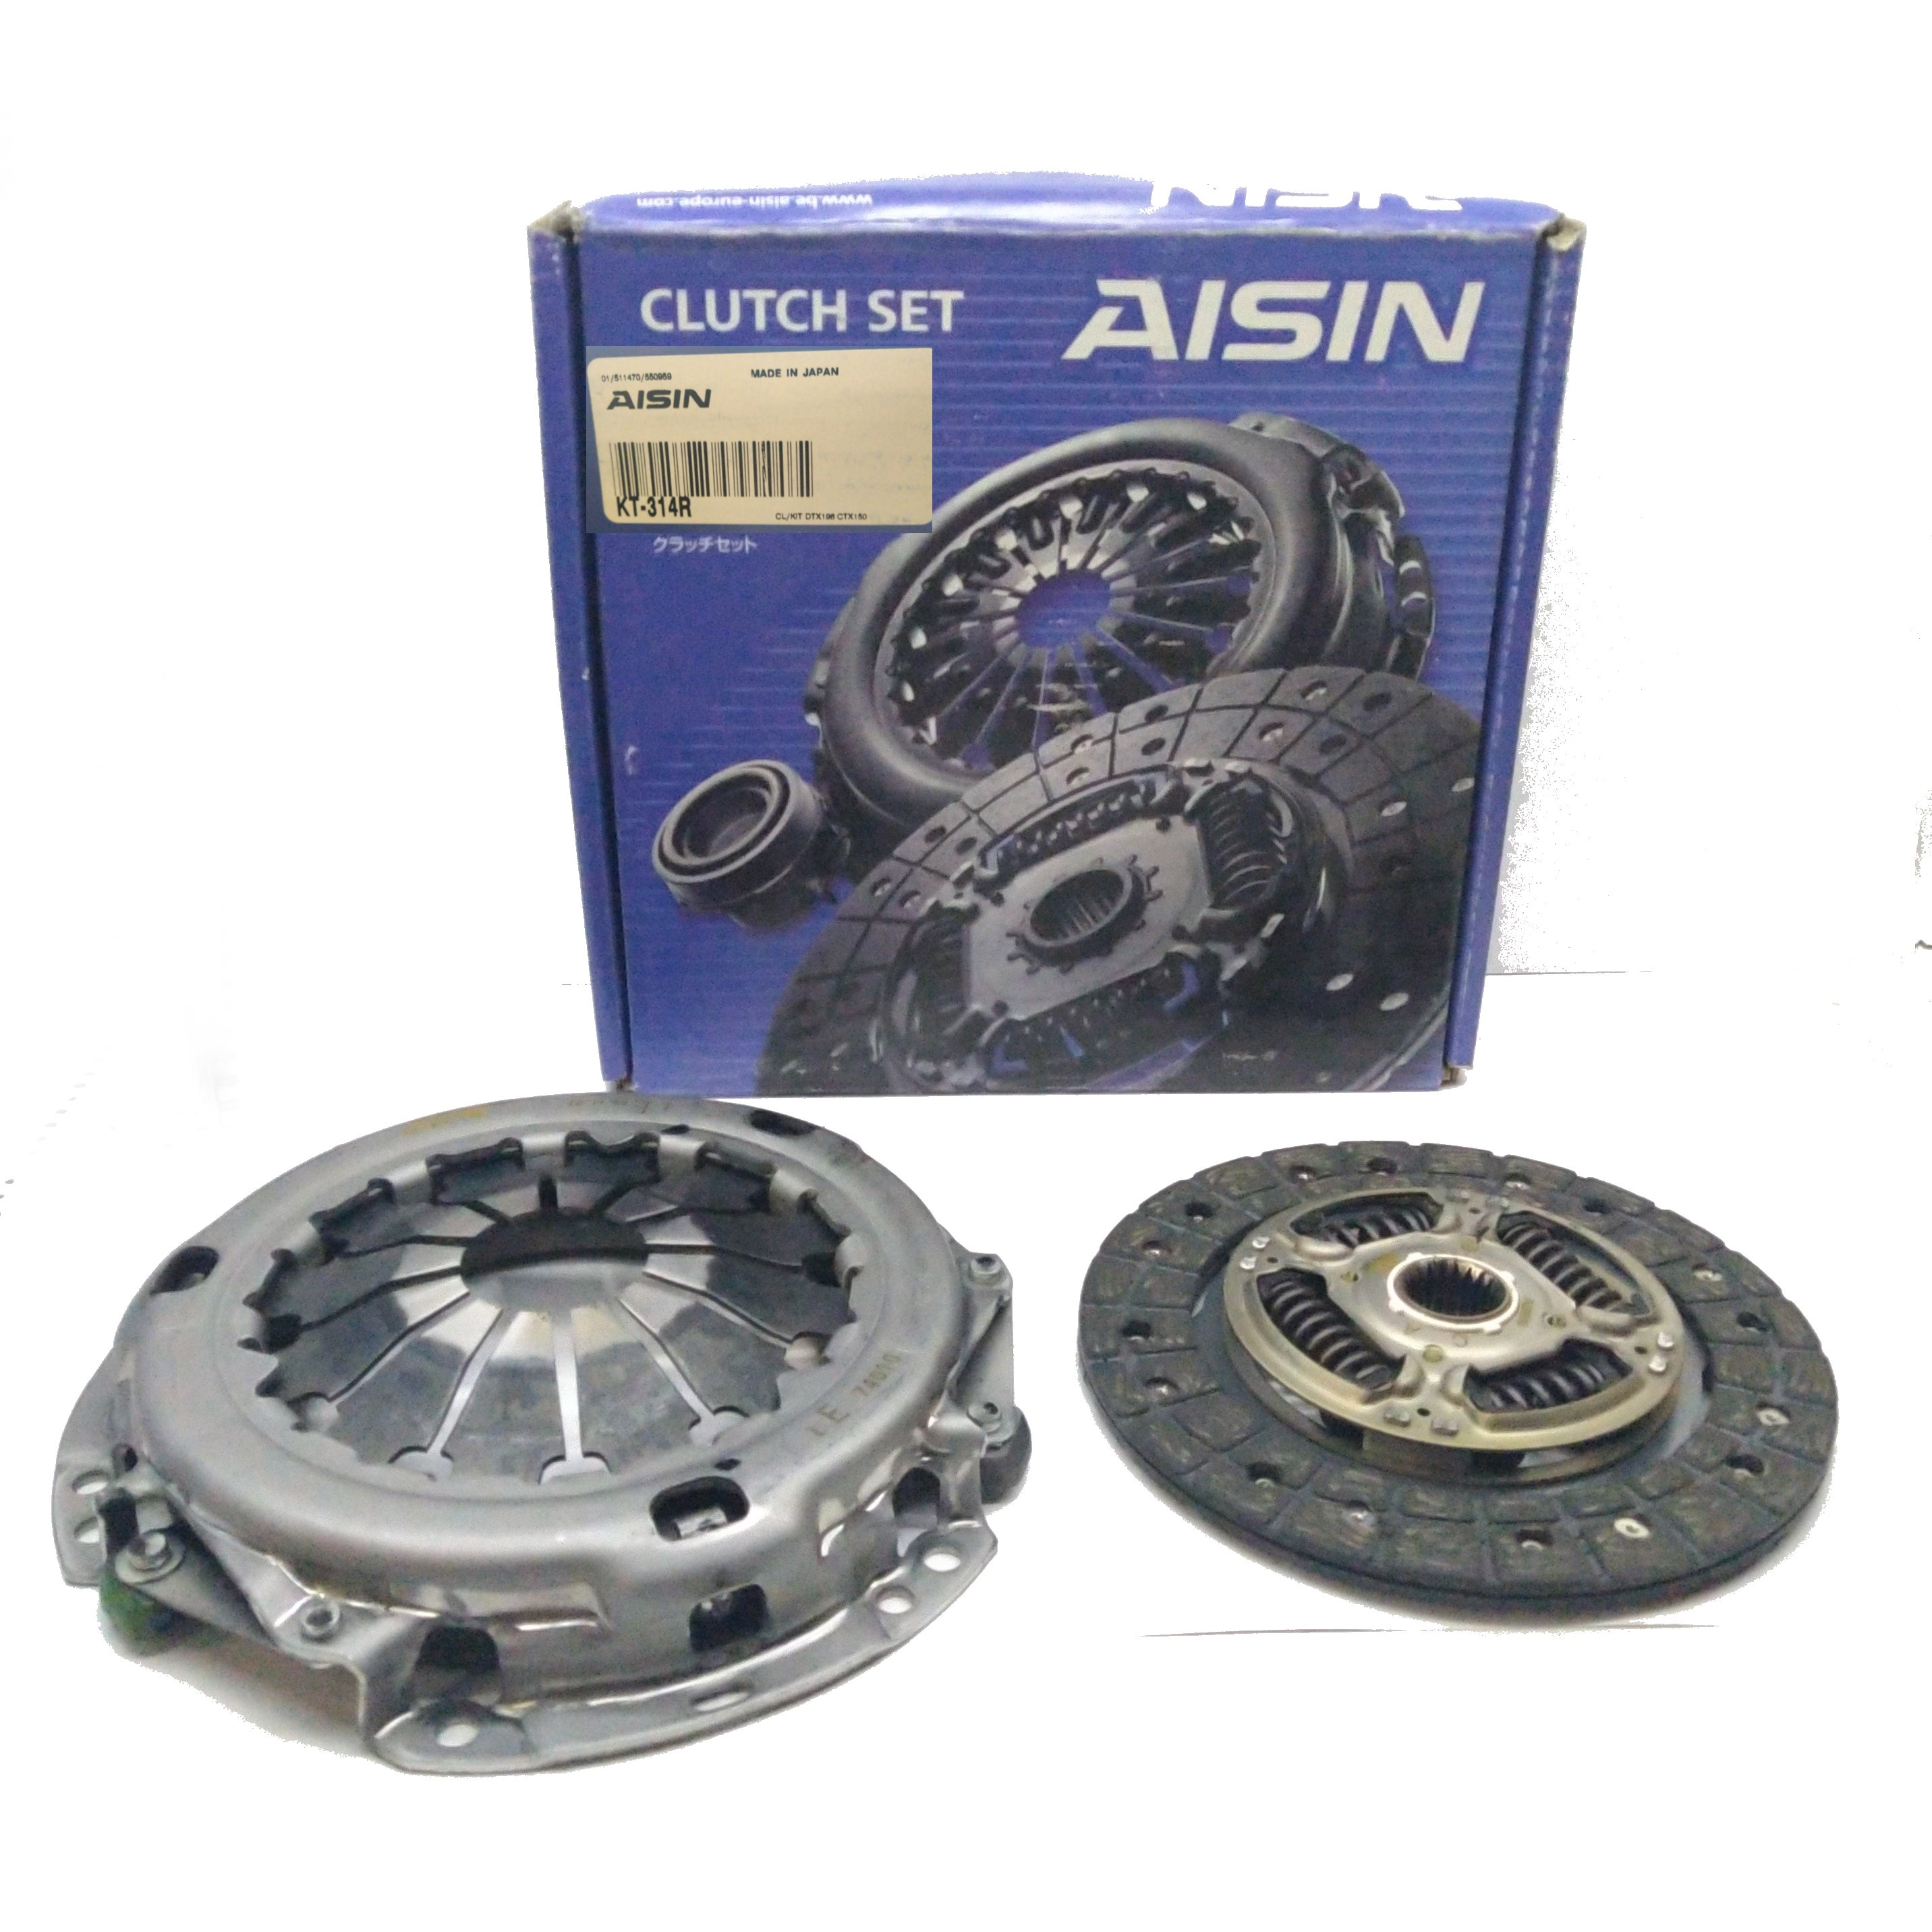 TOYOTA IQ 1.0 AISIN CLUTCH KIT FOR 3121074010